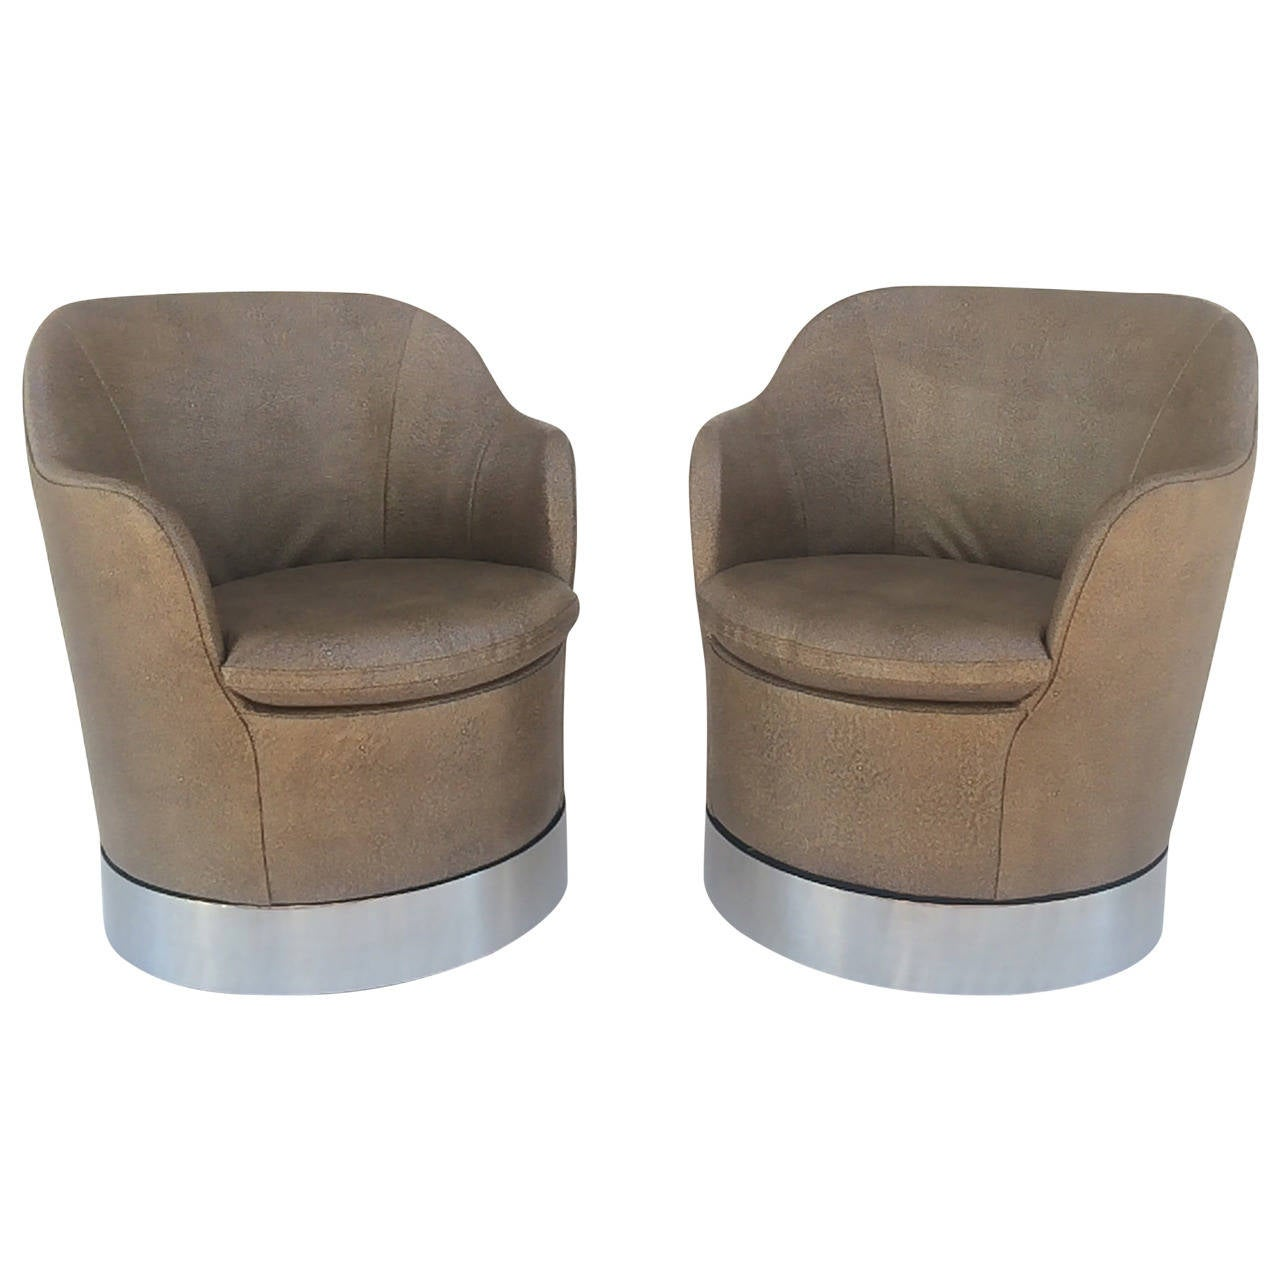 Swivel Lounge Chairs Designed by Phillip Enfield